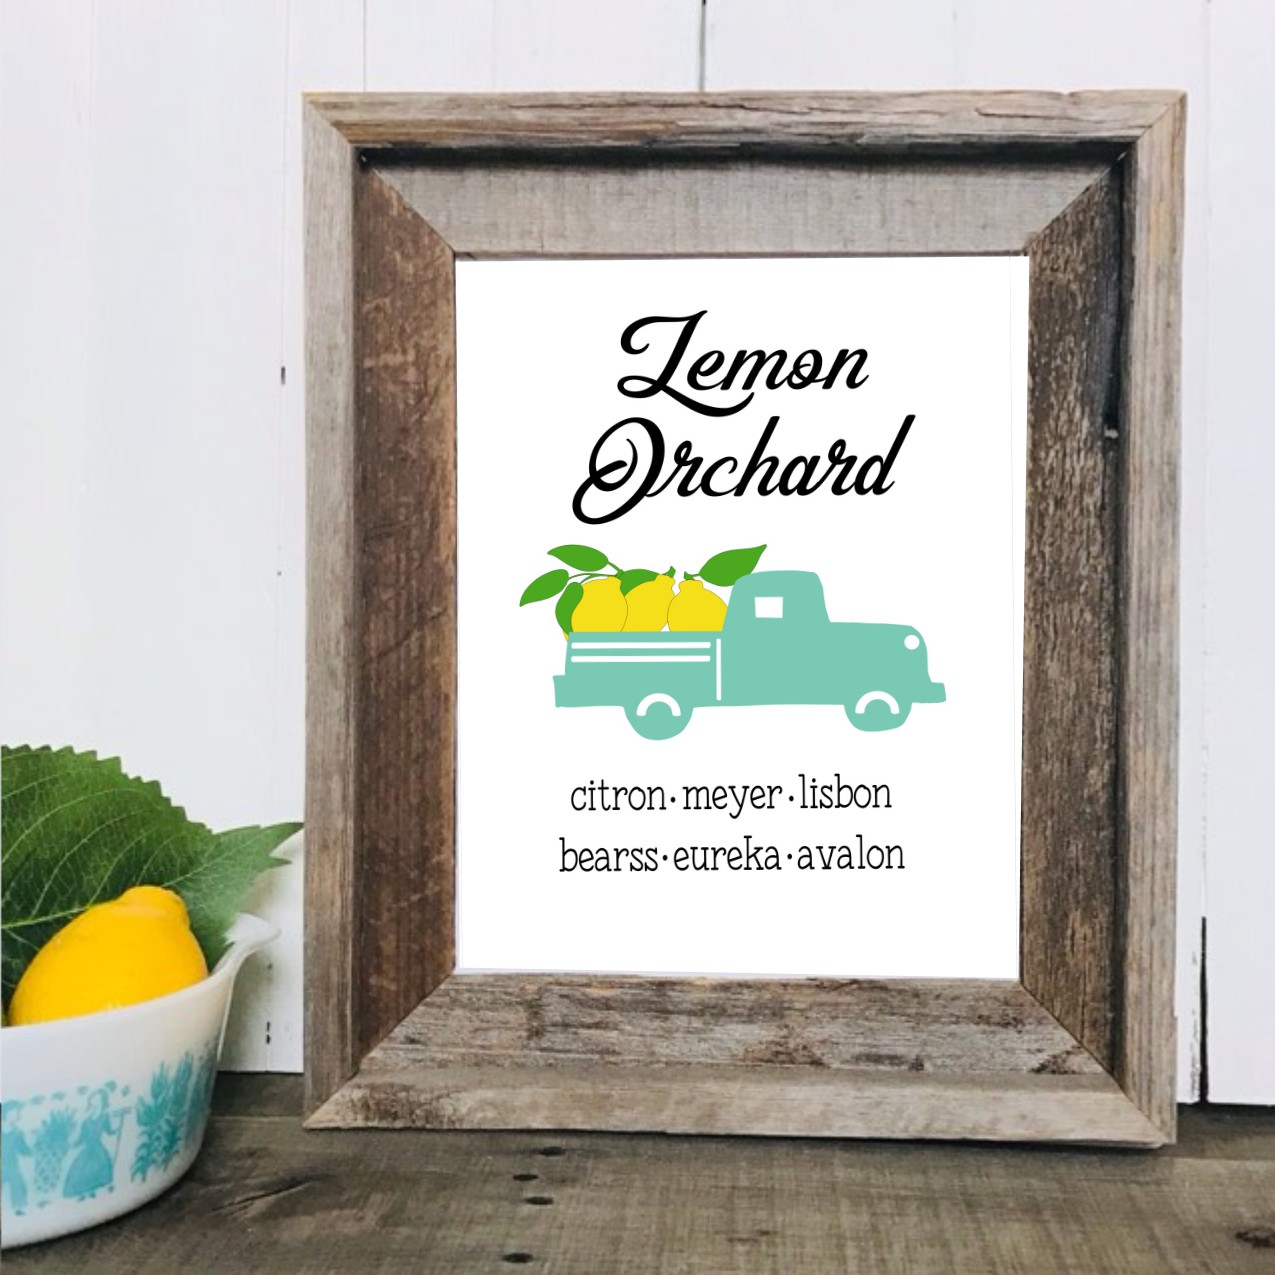 lemon orchard mock up.jpg